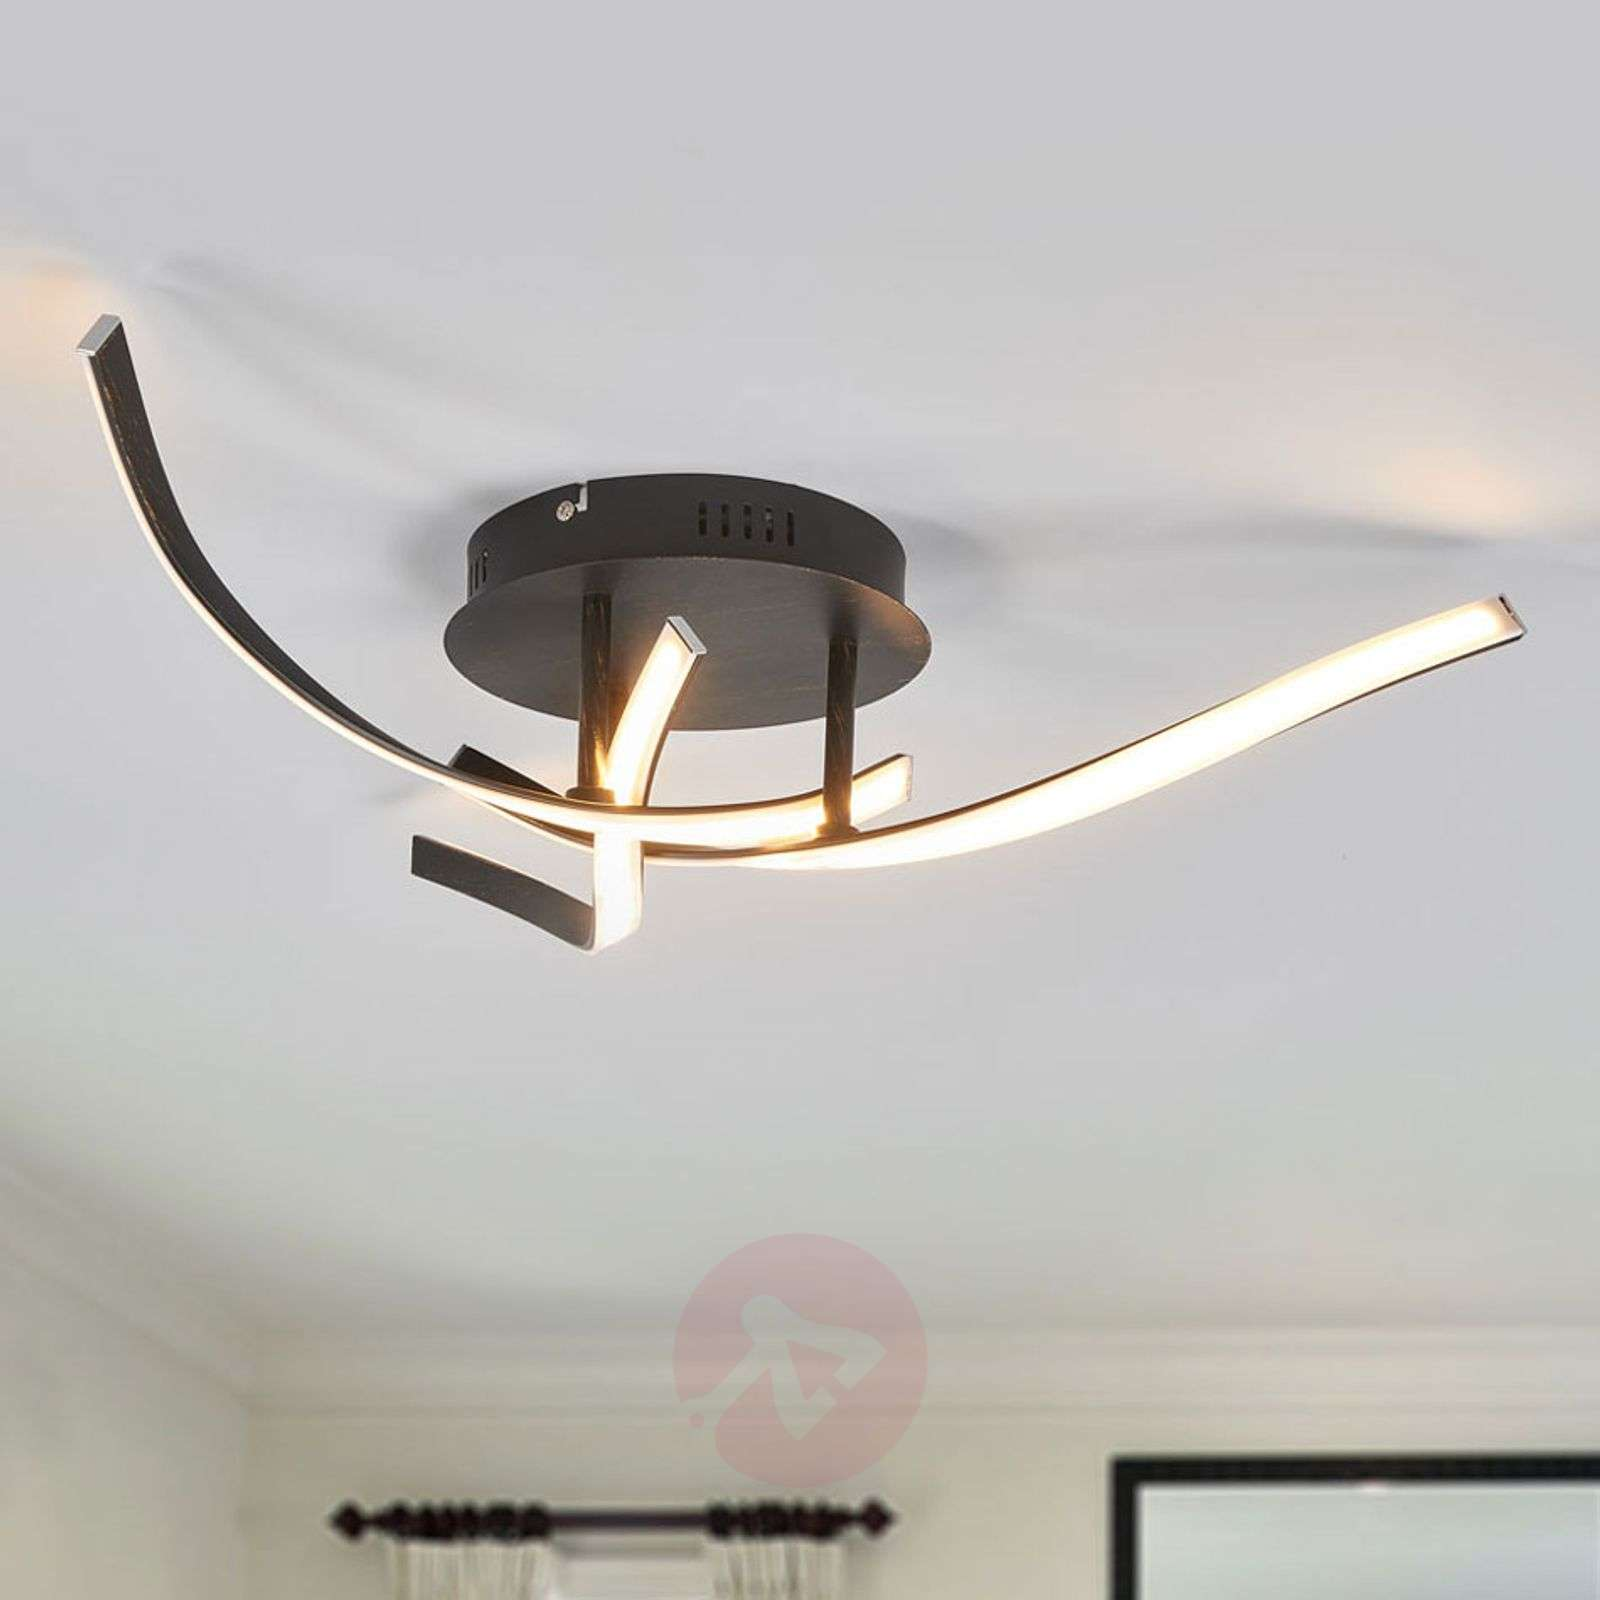 Milane brown LED ceiling light, 3 dimming levels-9985058-02